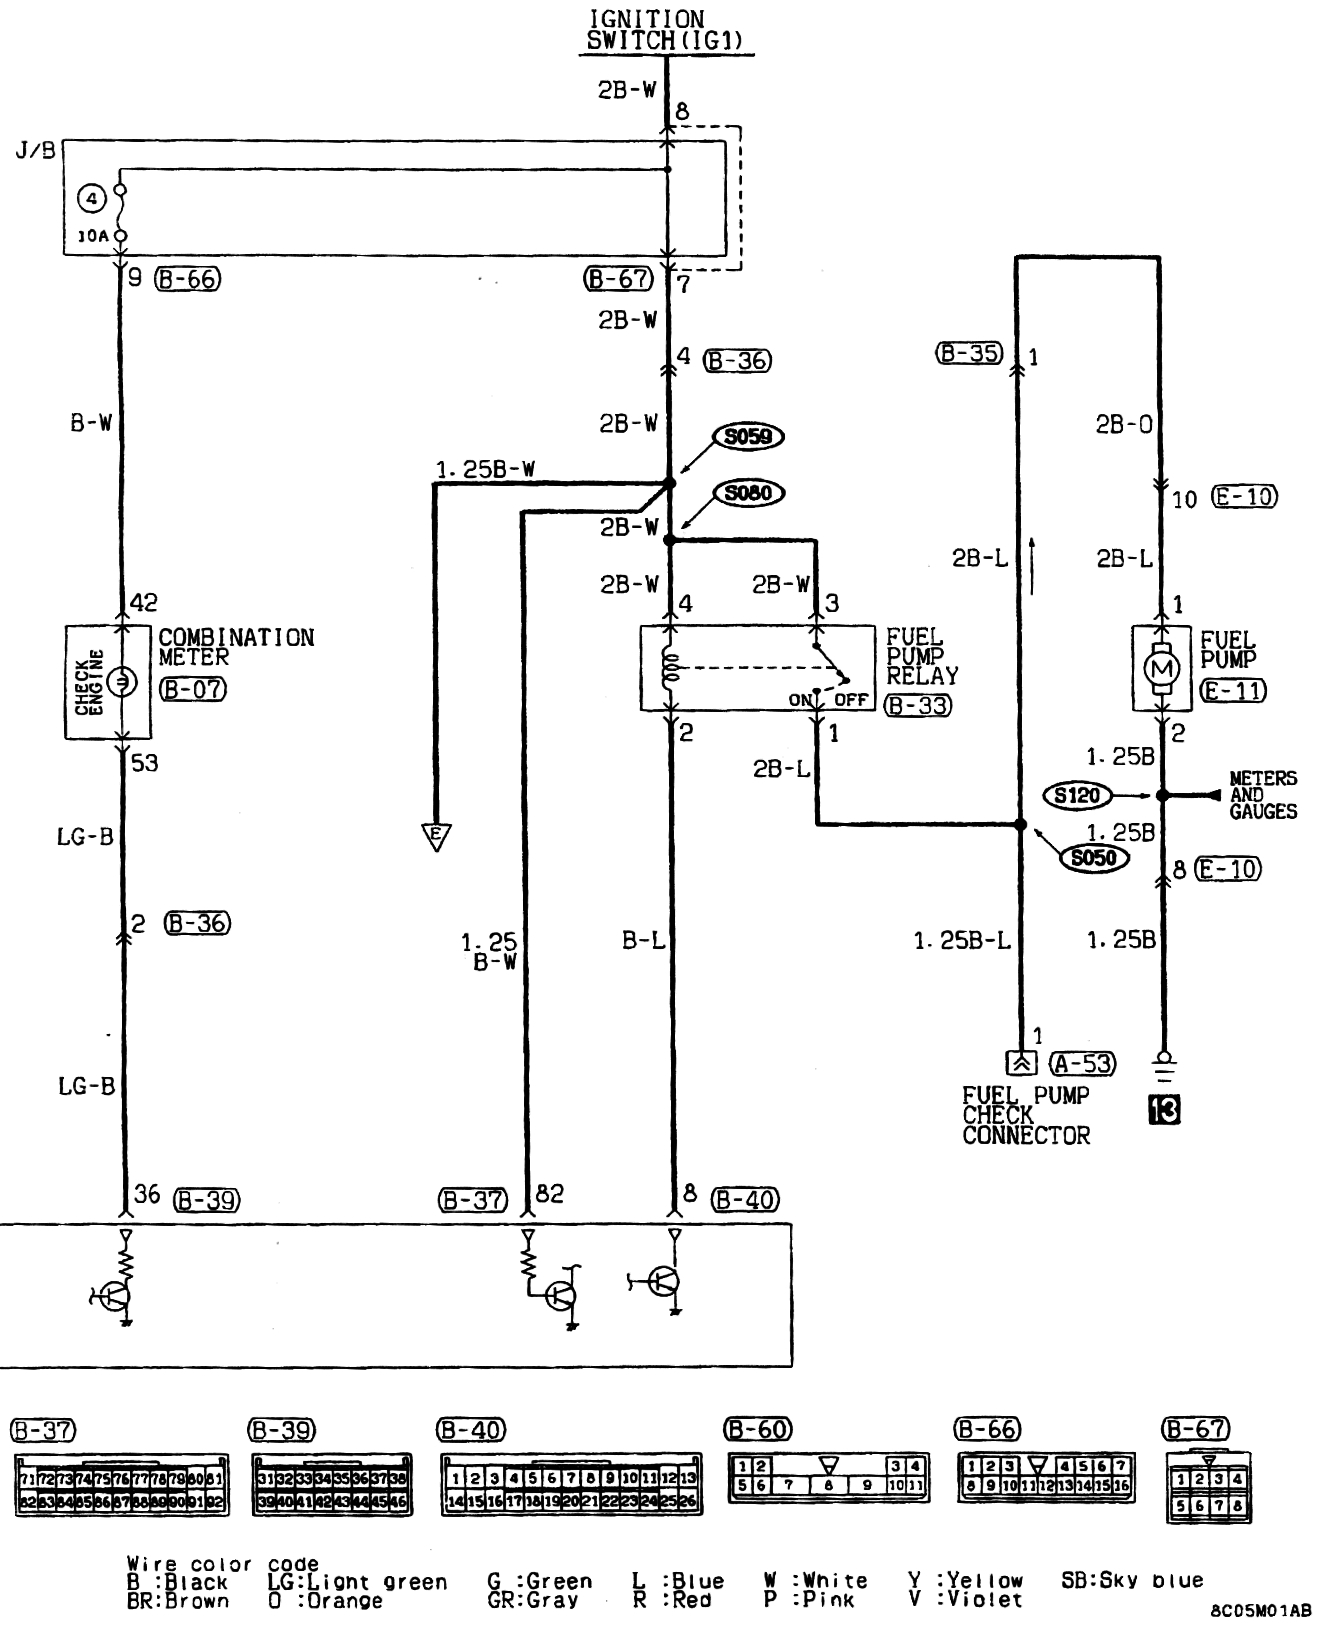 Mitsubishi Wiring Diagram 1998 Just Another Blog Montero Mirage Fixed It Rh Ericjoannes Com Lancer Pajero